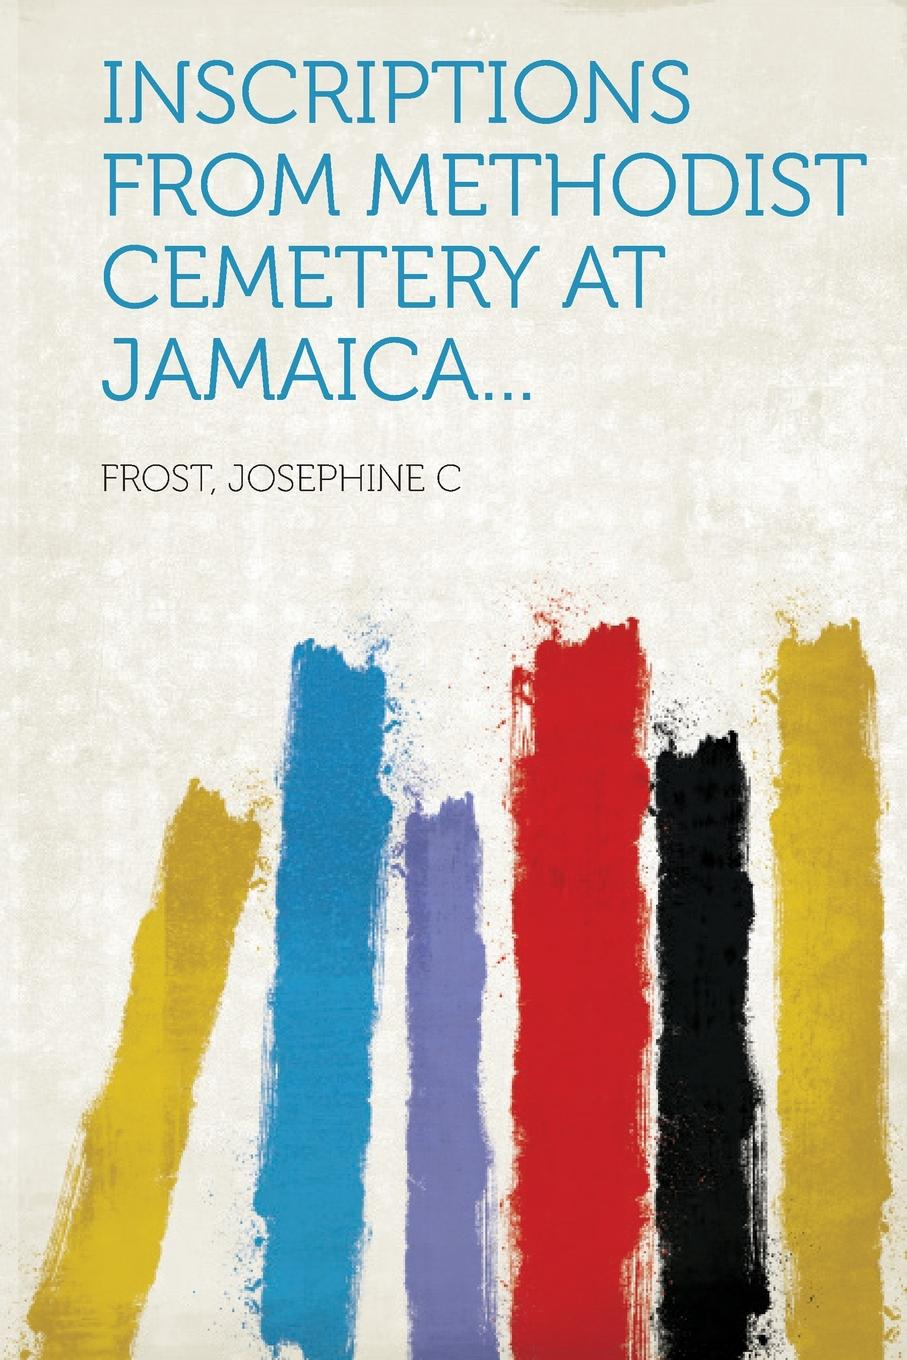 Inscriptions from Methodist Cemetery at Jamaica...